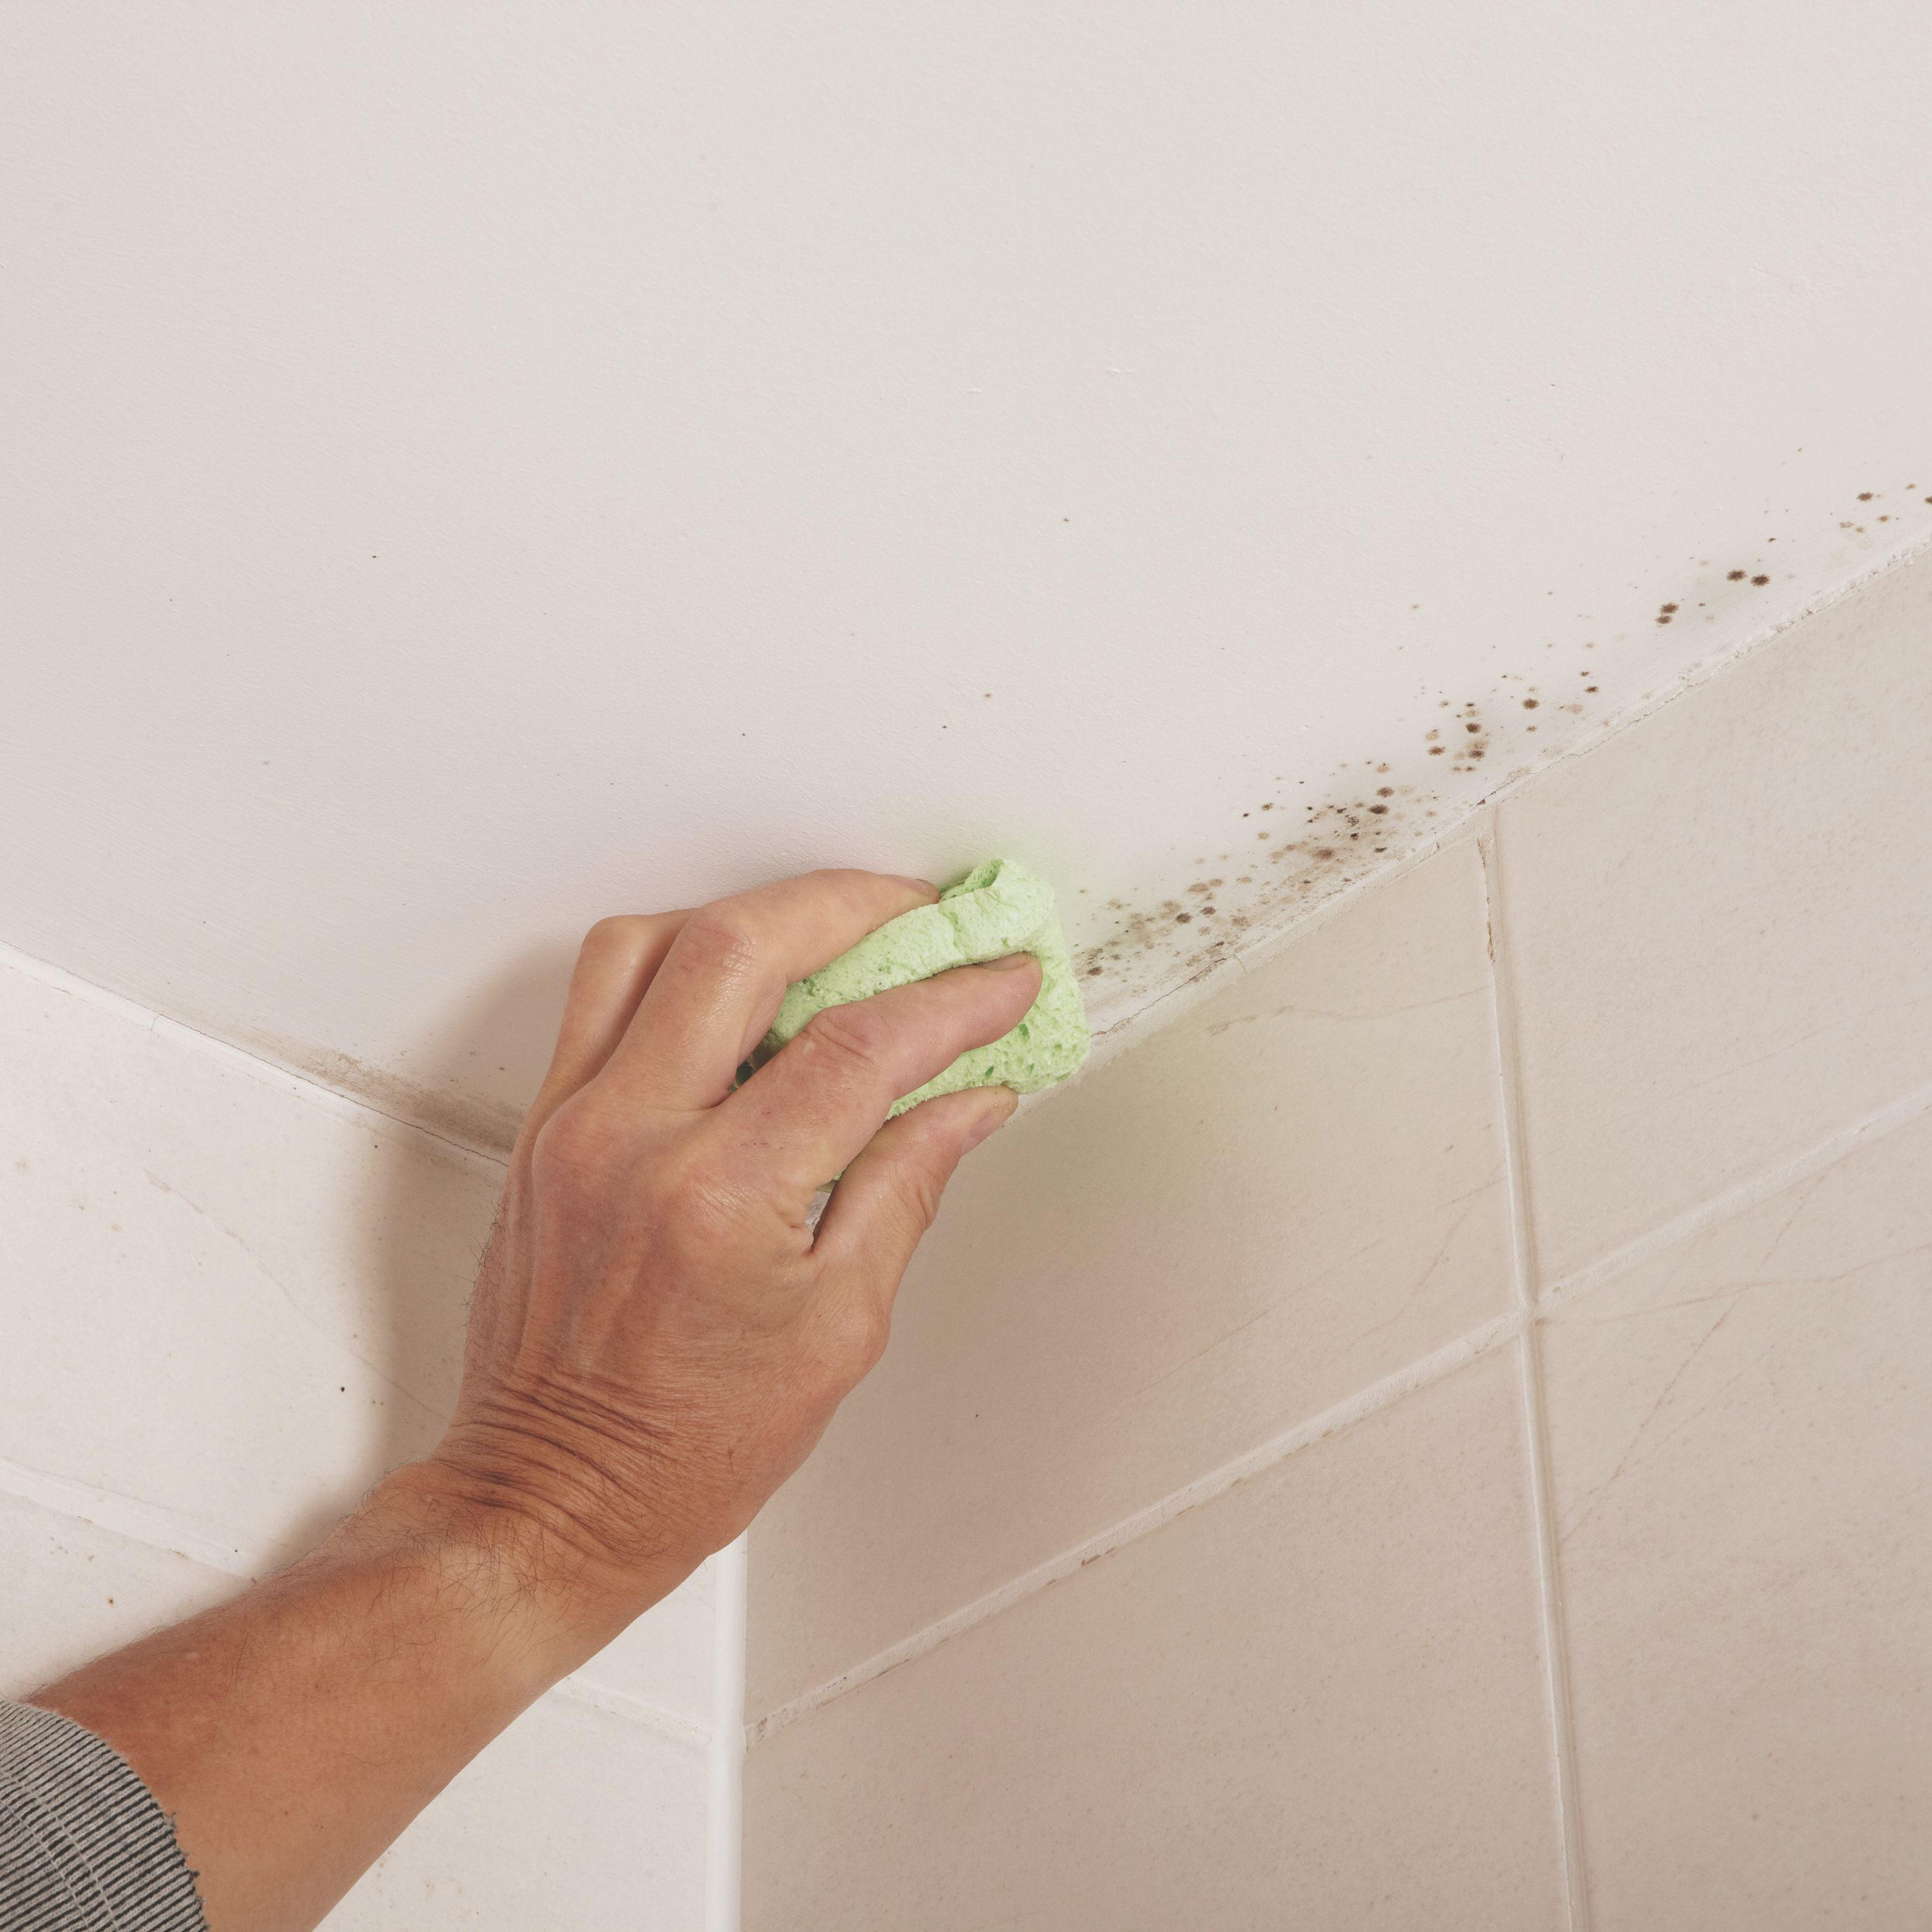 Black Mold Under Wallpaper How To Identify Repair Amp Protect Against Damp At Home